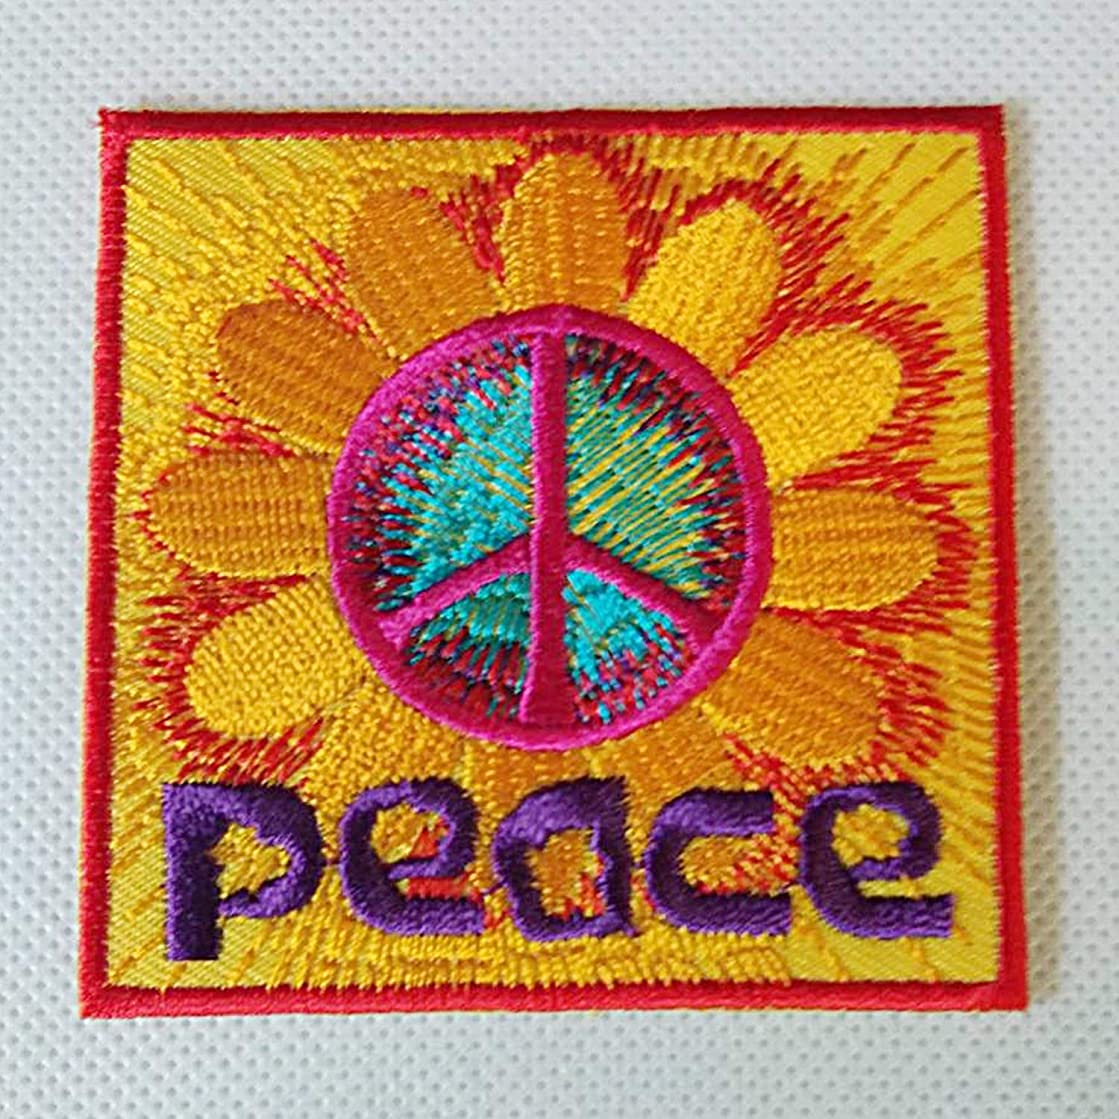 Zazza95 New Bright Yellow Red Purple Peace Sunflower Retro Rider Biker Sign Embroidered Sew Iron On Patch Badge Fabric Applique Handmade Art Craft Transfer Sequin DIY Clothes Clothing Shirts Jeans Bag